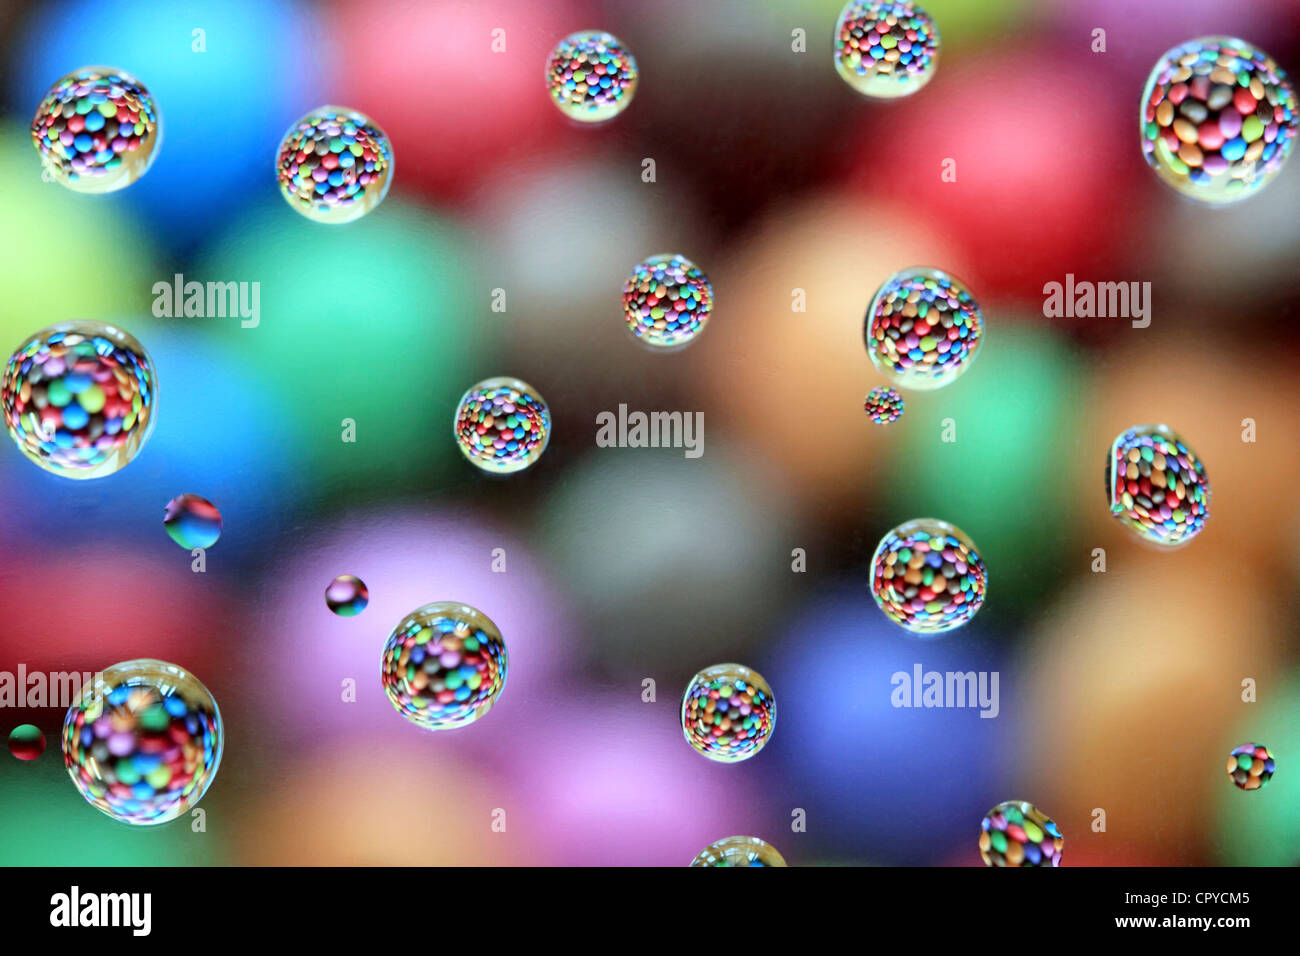 Colourful bubbles - Stock Image